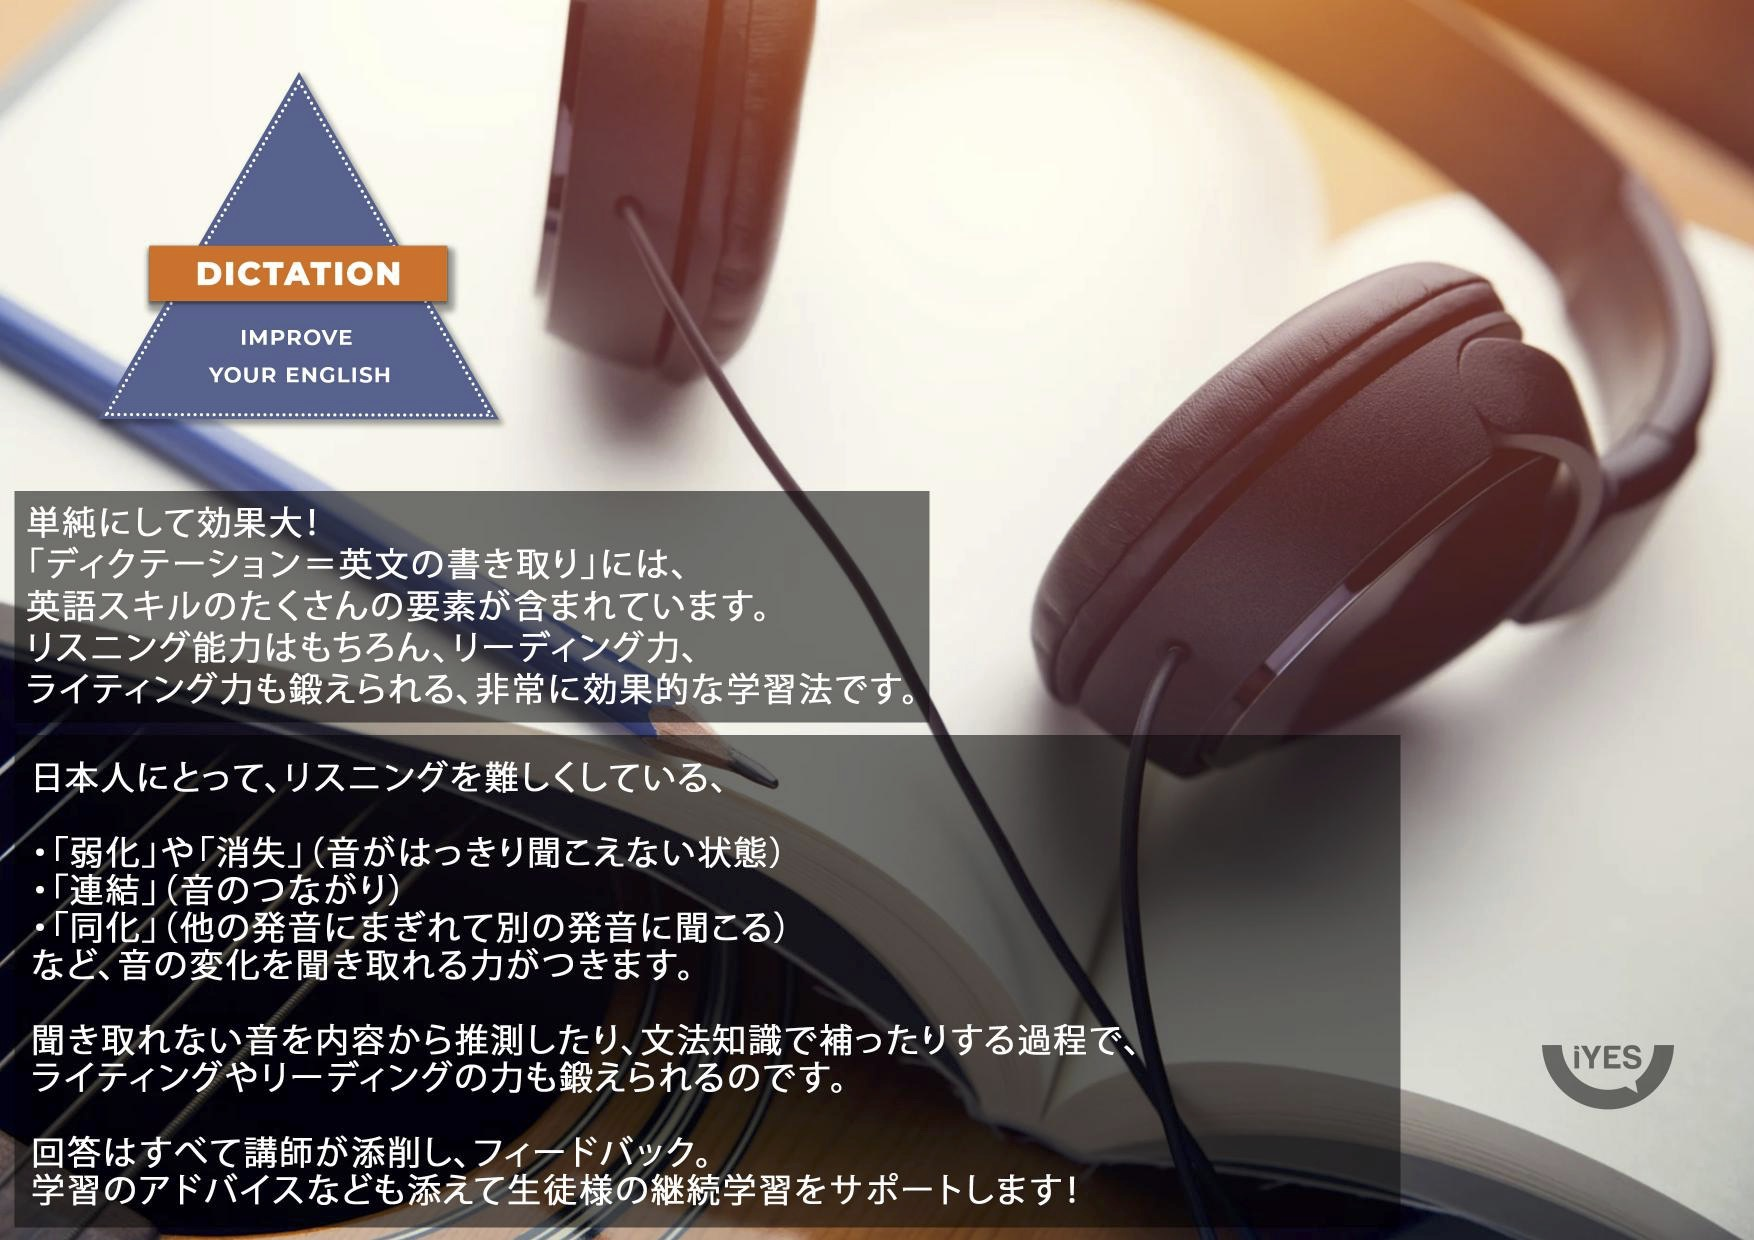 DictationFlyer